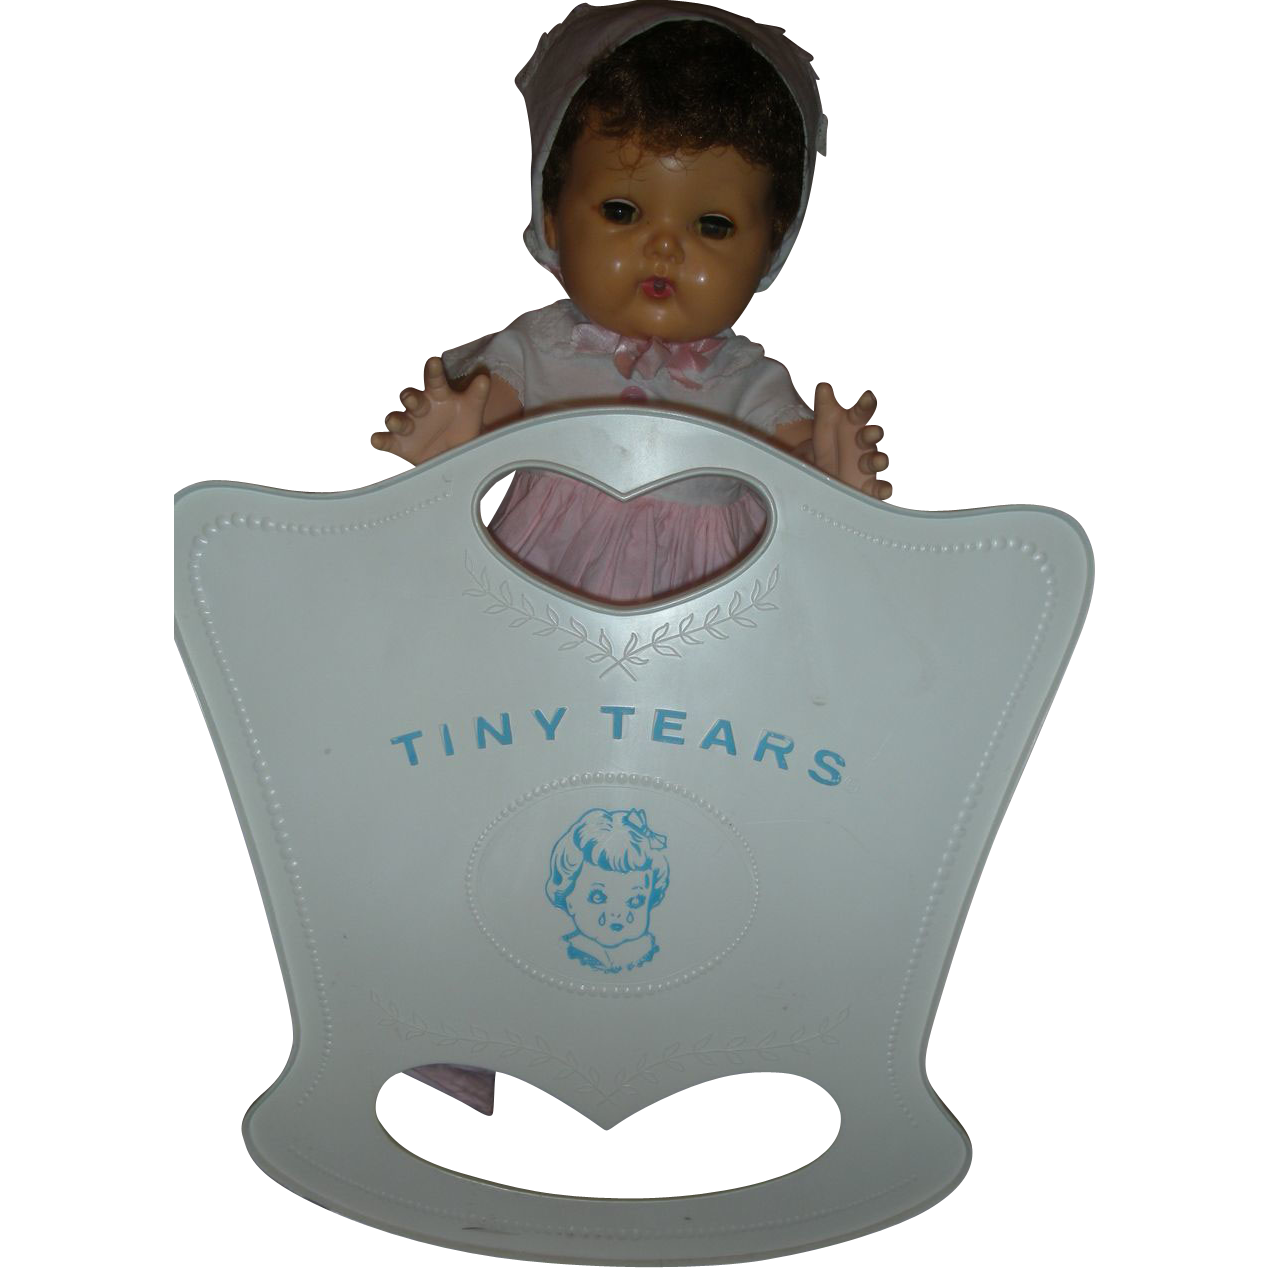 Rare Vintage American Character Tiny Tears Doll Cradle